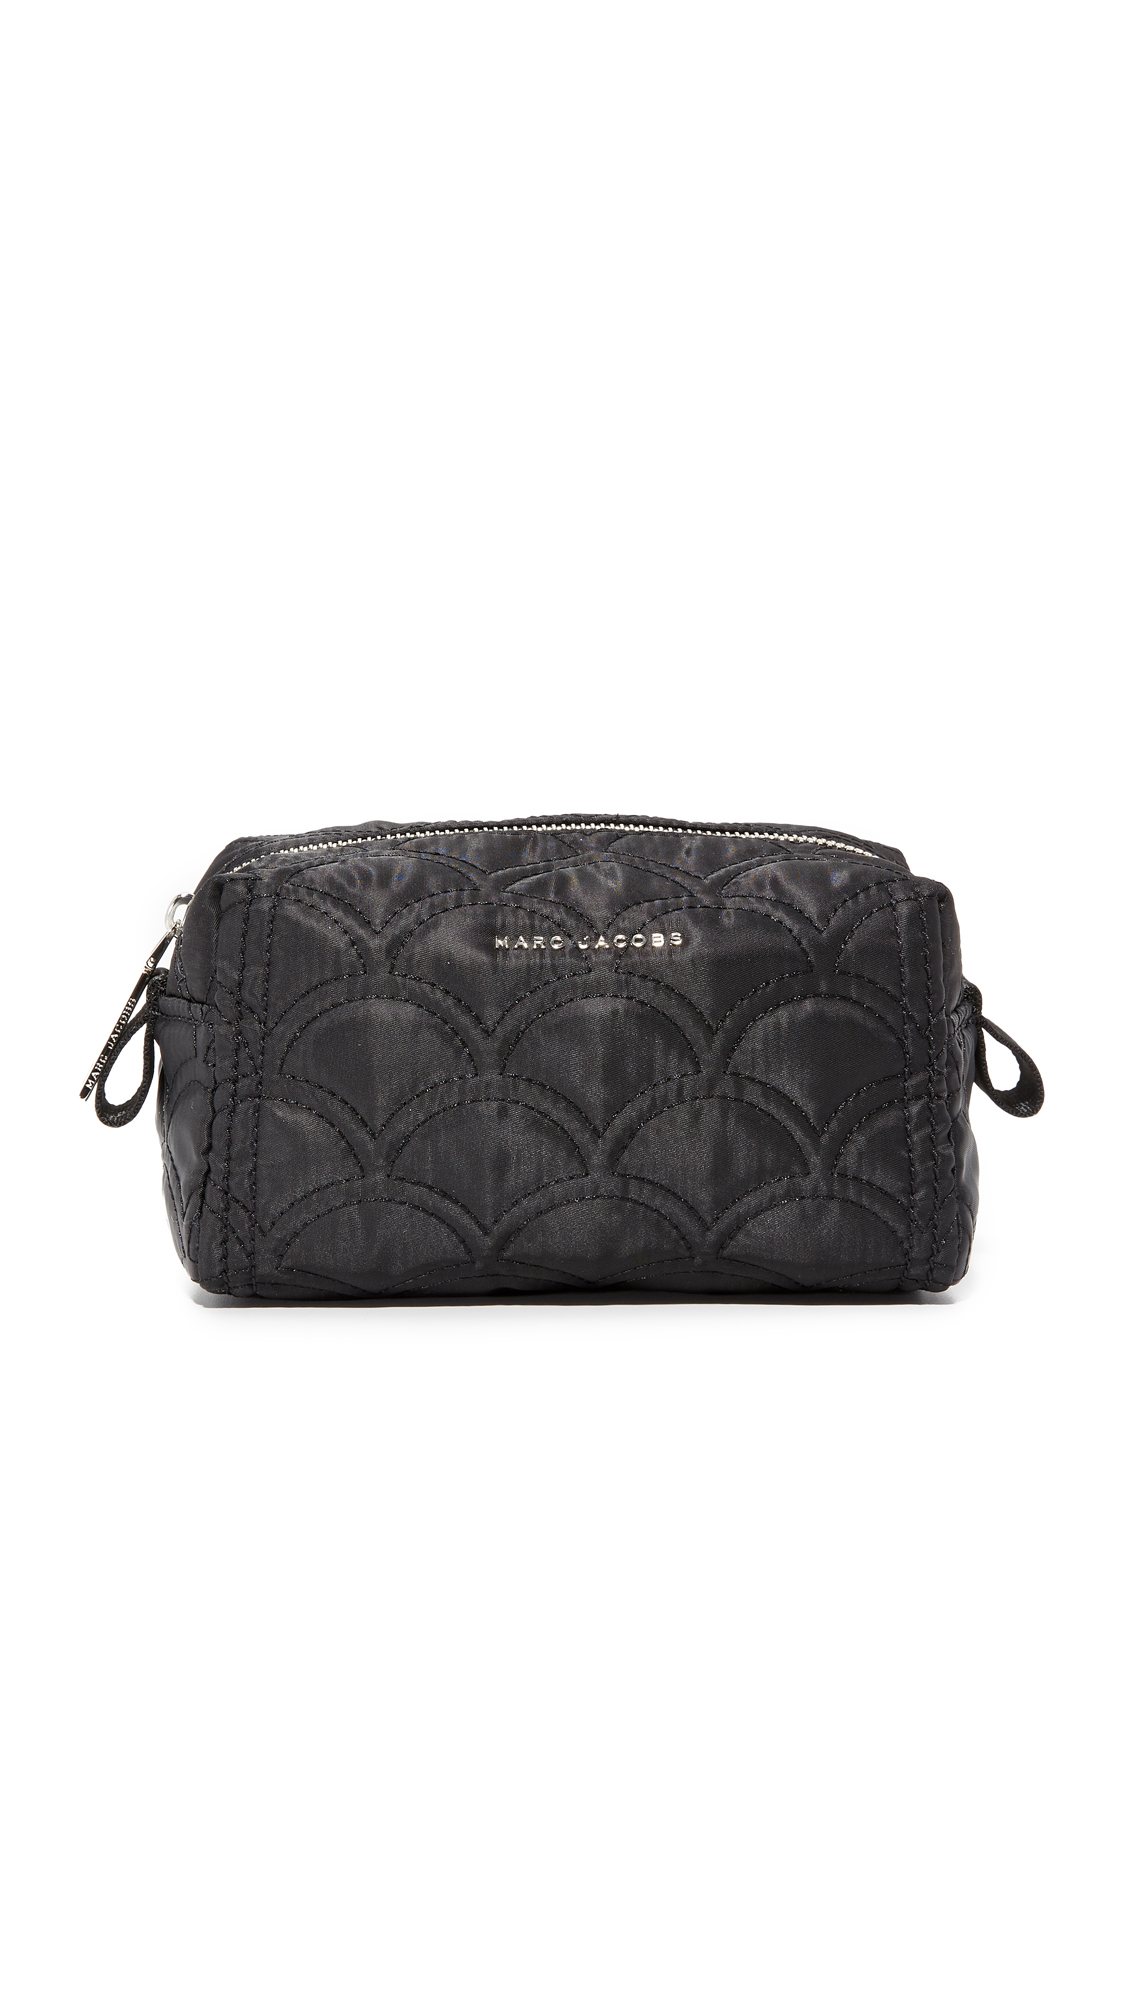 marc jacobs female marc jacobs easy quilted large cosmetic case black